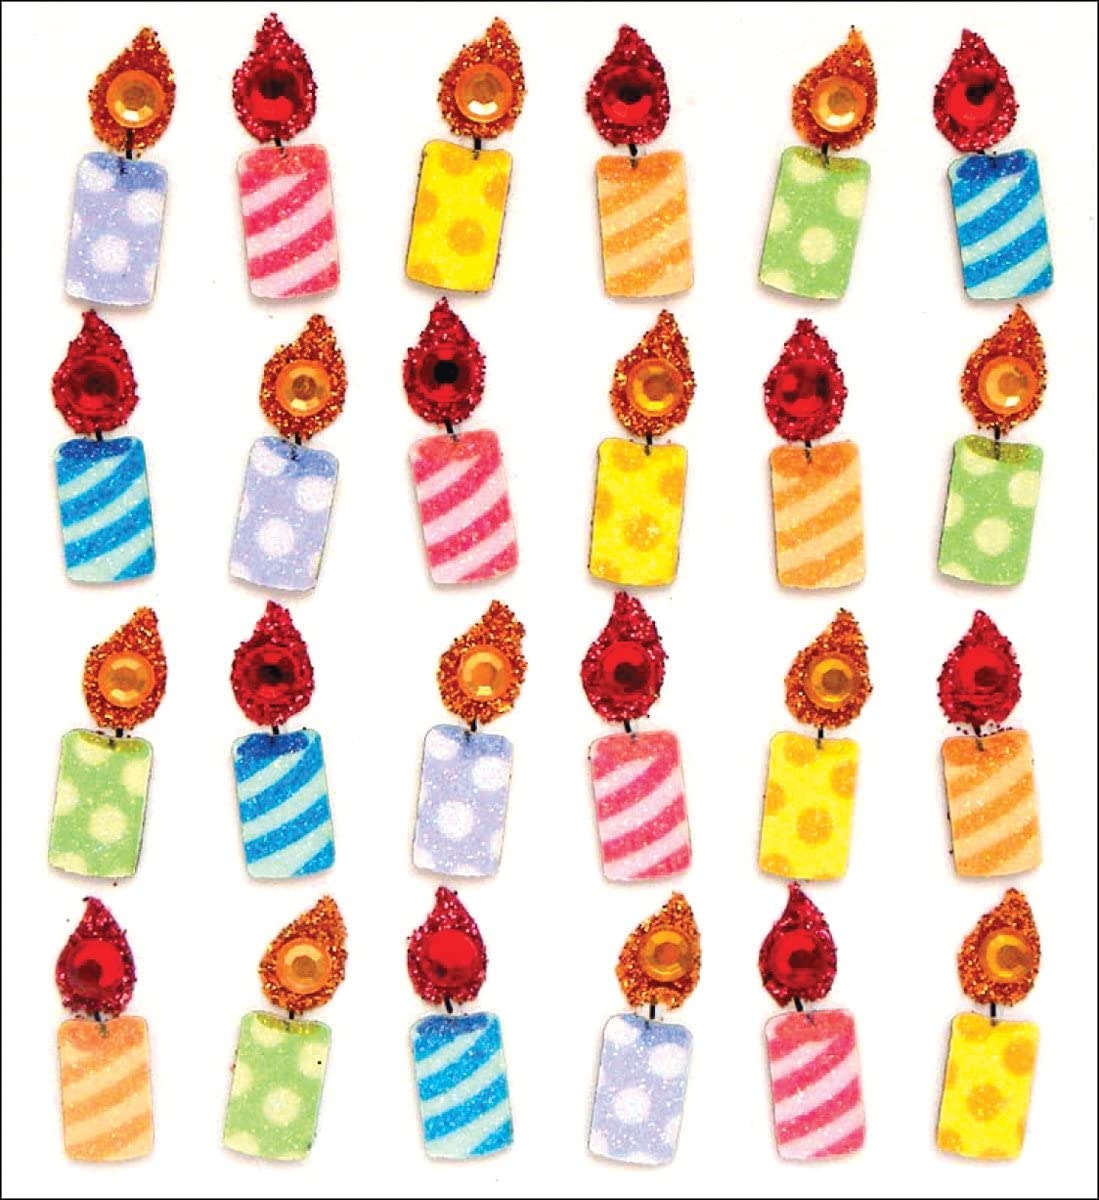 BALLOONS CANDLES HATS GIFTS CARDS BIRTHDAY BASH EK SUCCESS STICKO STICKERS